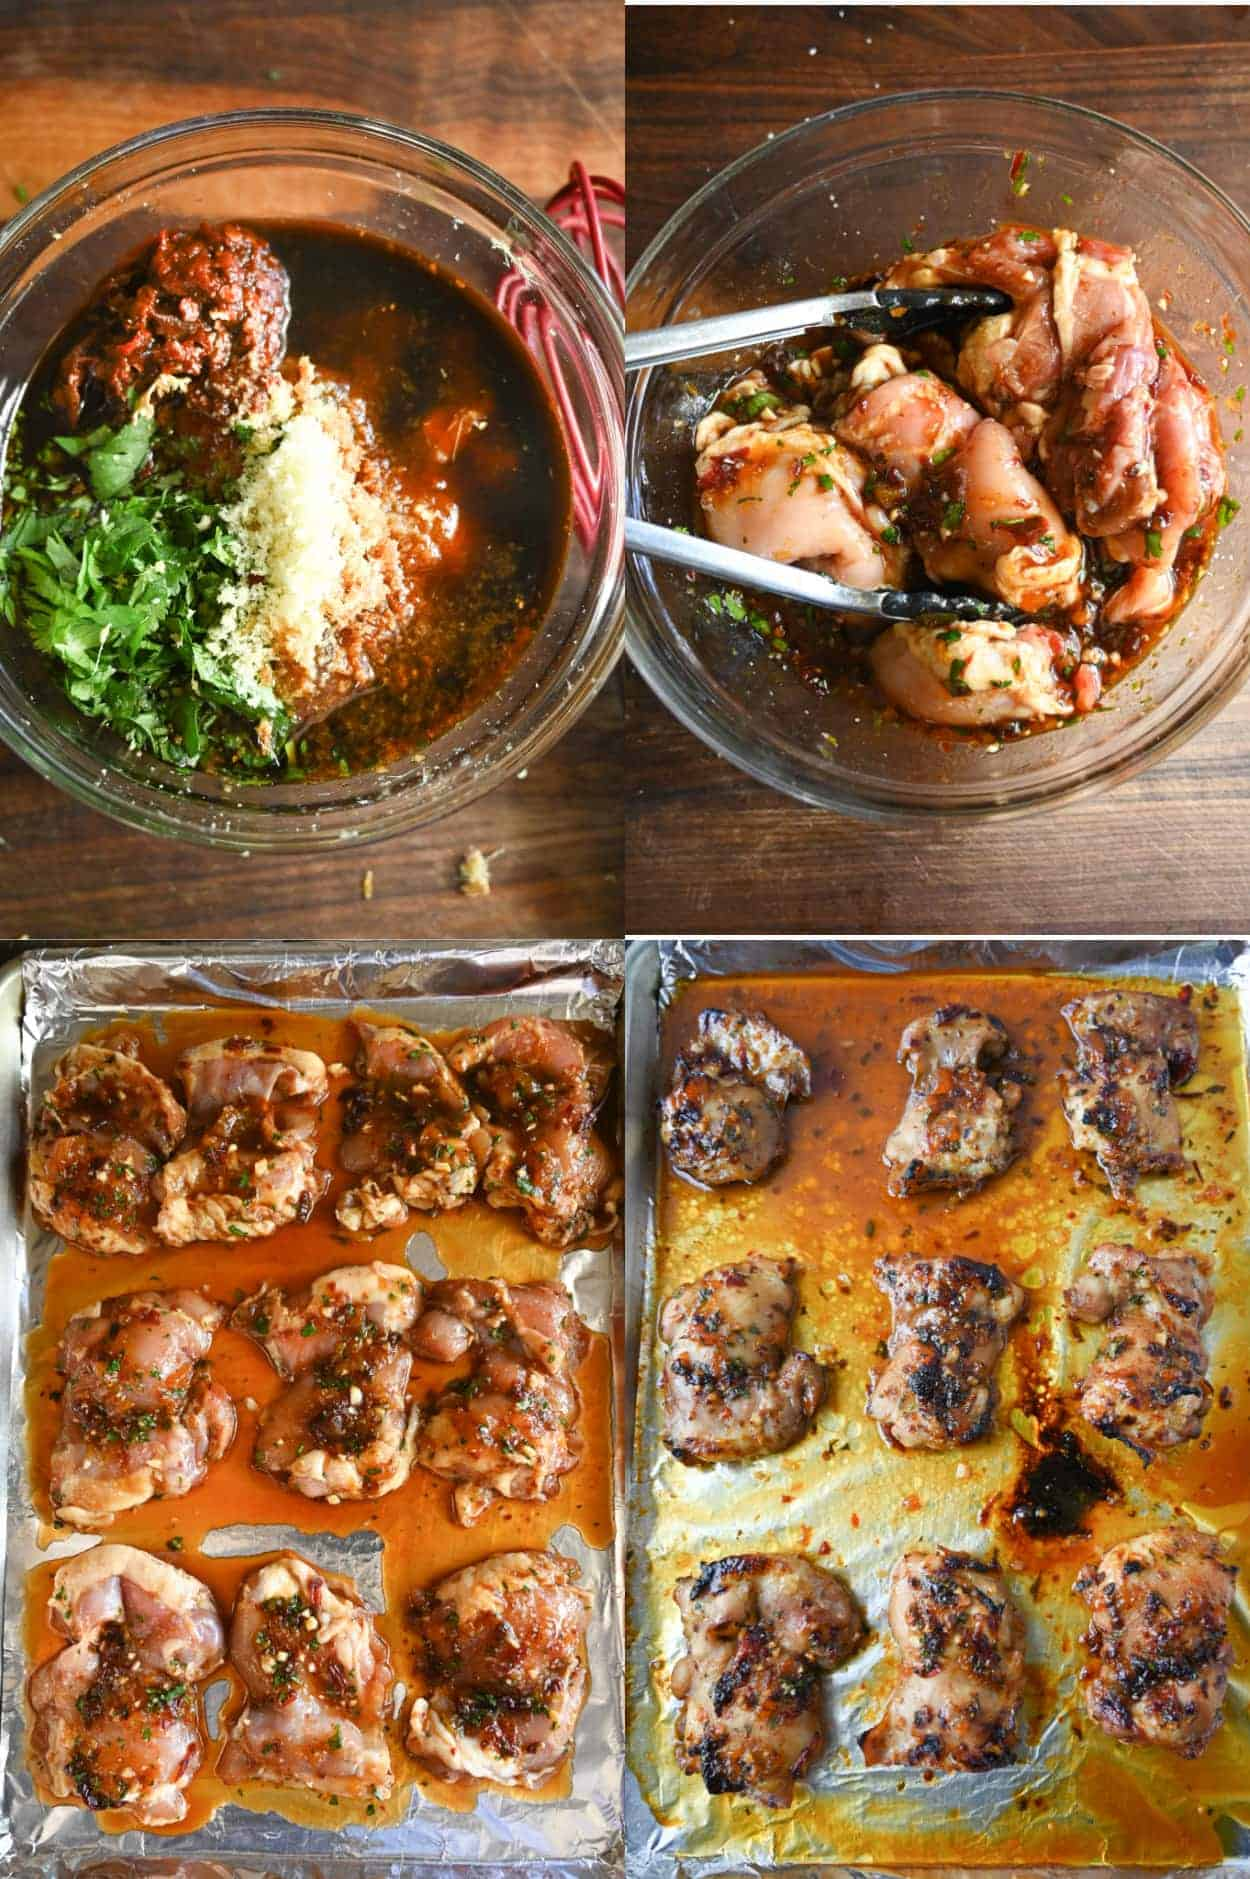 Four process photos. First one, marinade ingredients placed in a medium bowl and whisked together. Second one, marinade tossed together with chicken thighs in a large bowl. Third one, chicken thigh placed onto a foil lined baking sheet. Fourth one, chicken out of the oven and done cooking.